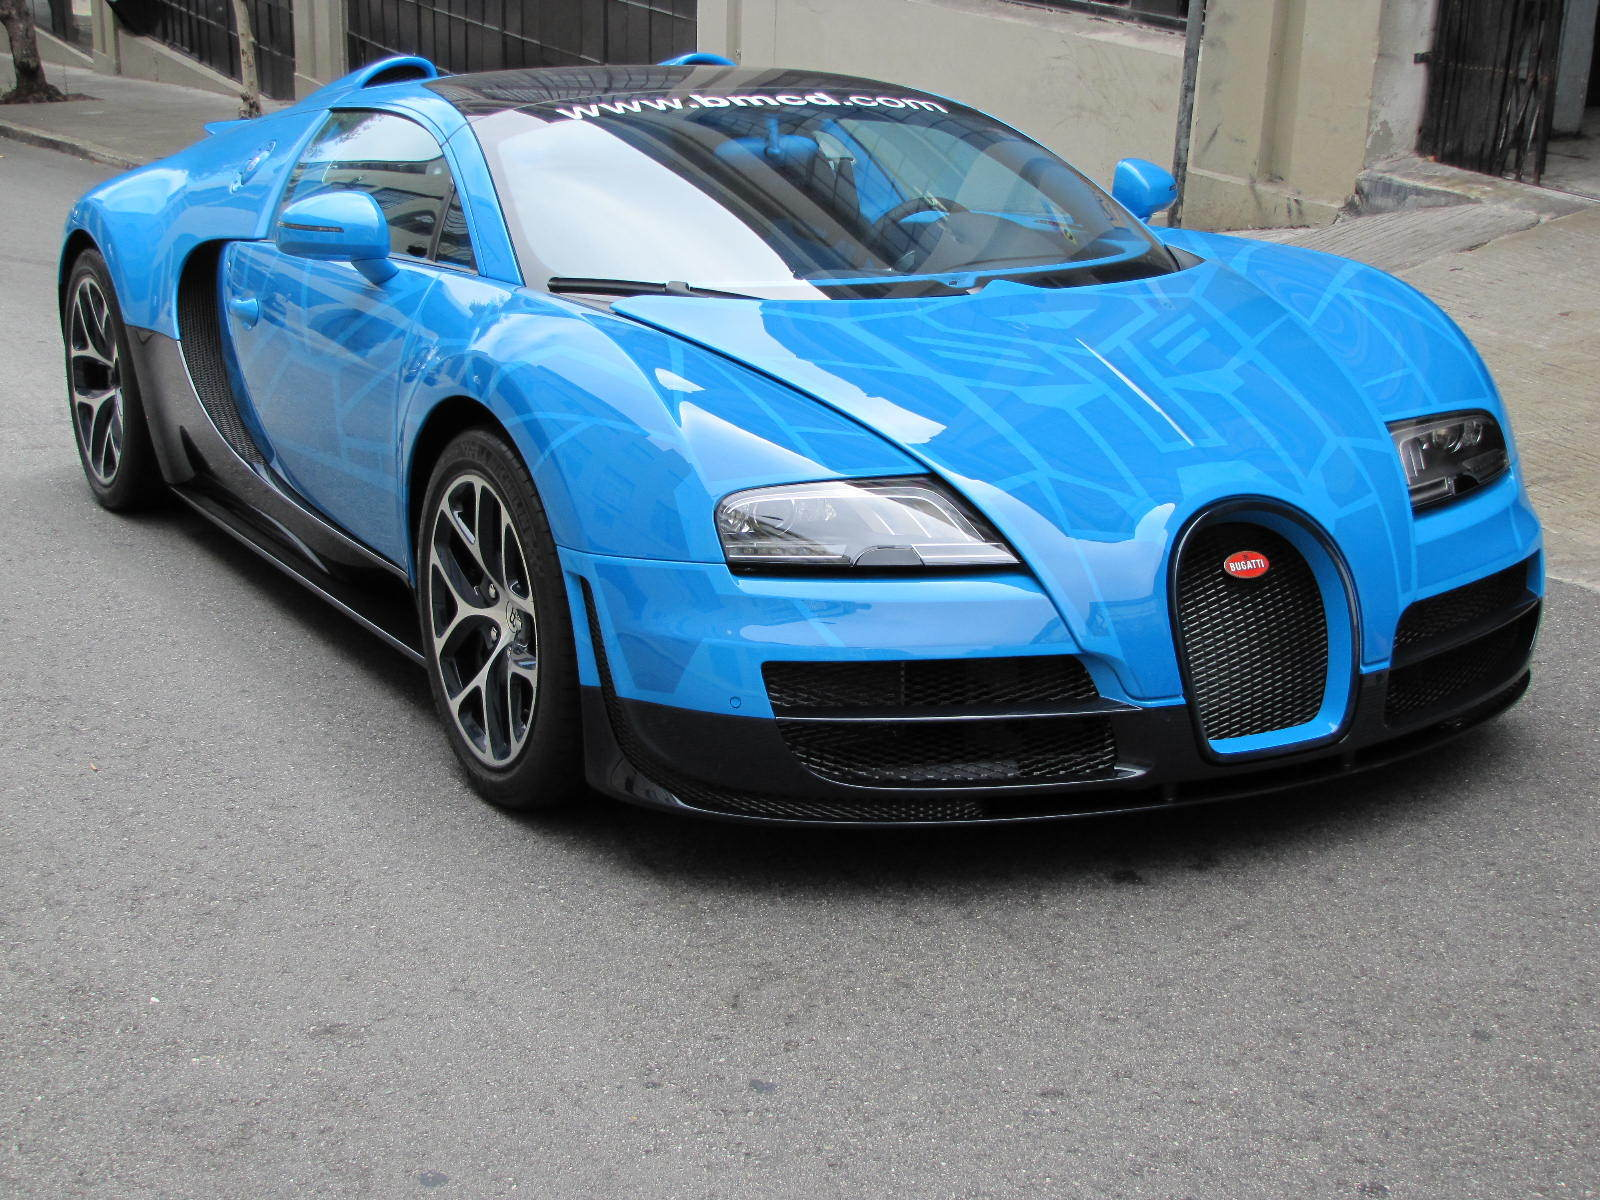 Bugatti Vitesse Transformers Edition One Of One Supercars For Sale on W16 Engine